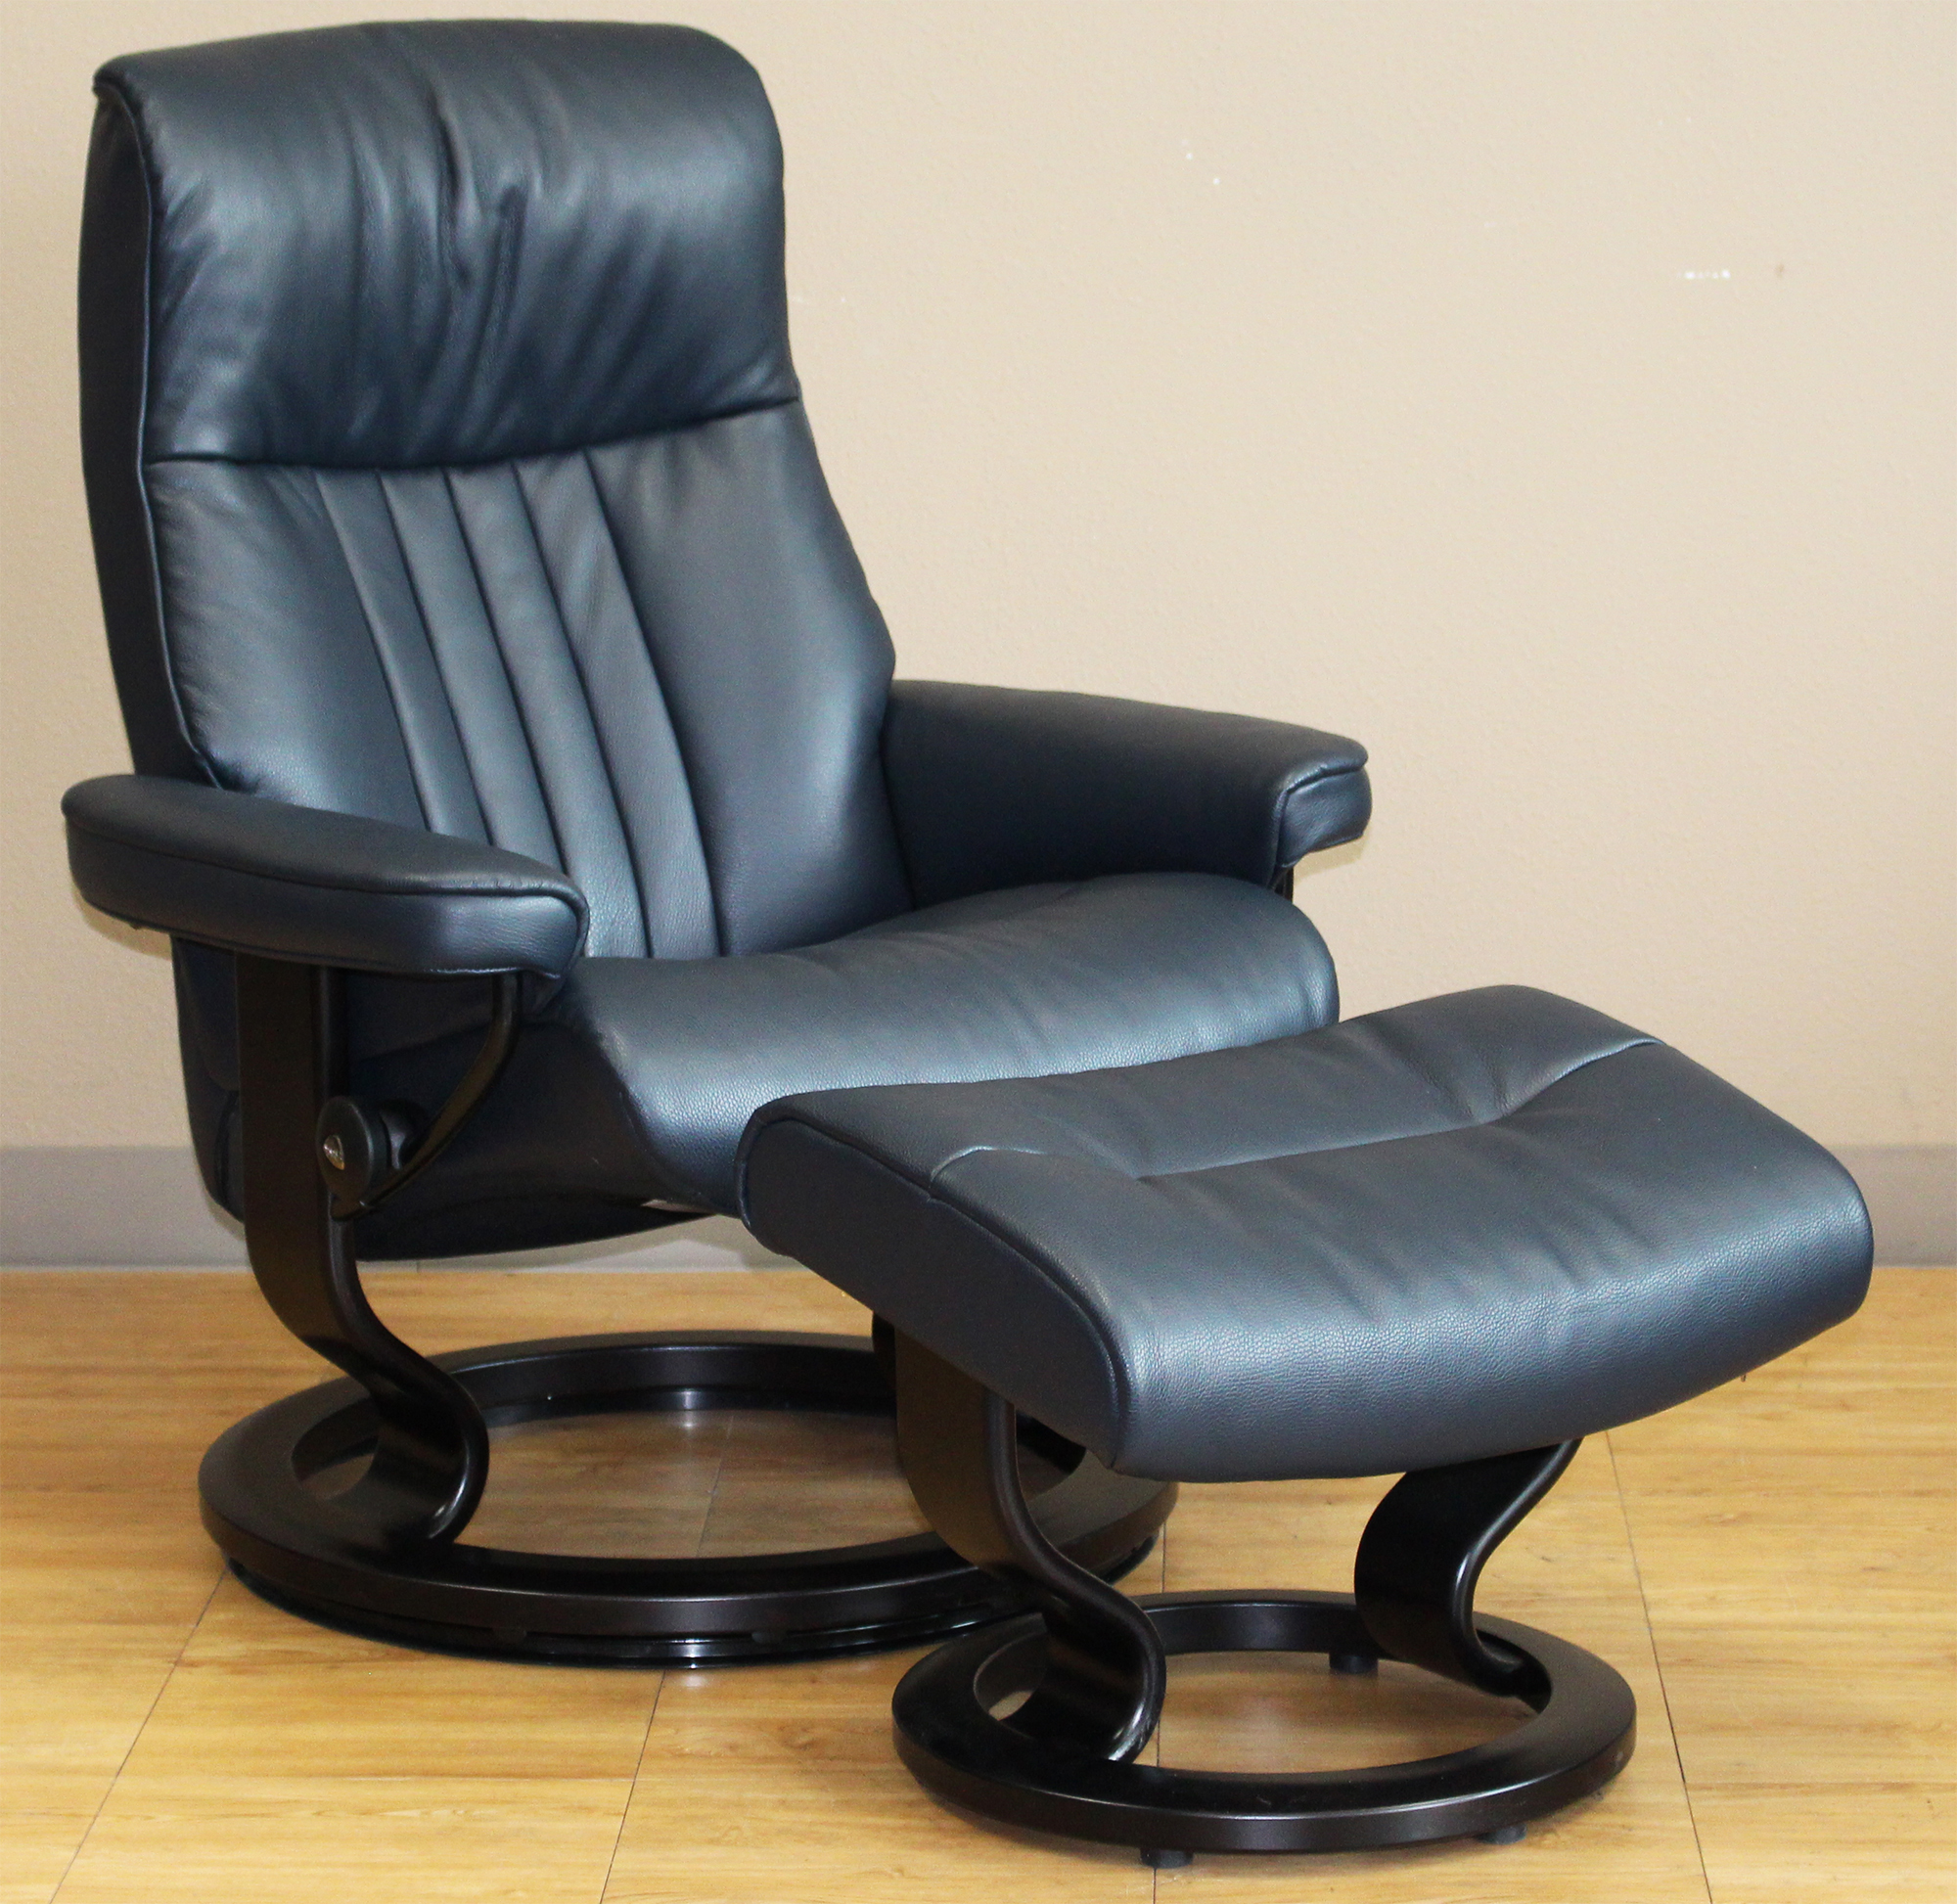 blue recliner chair adirondack chairs from recycled plastic stressless crown cori leather